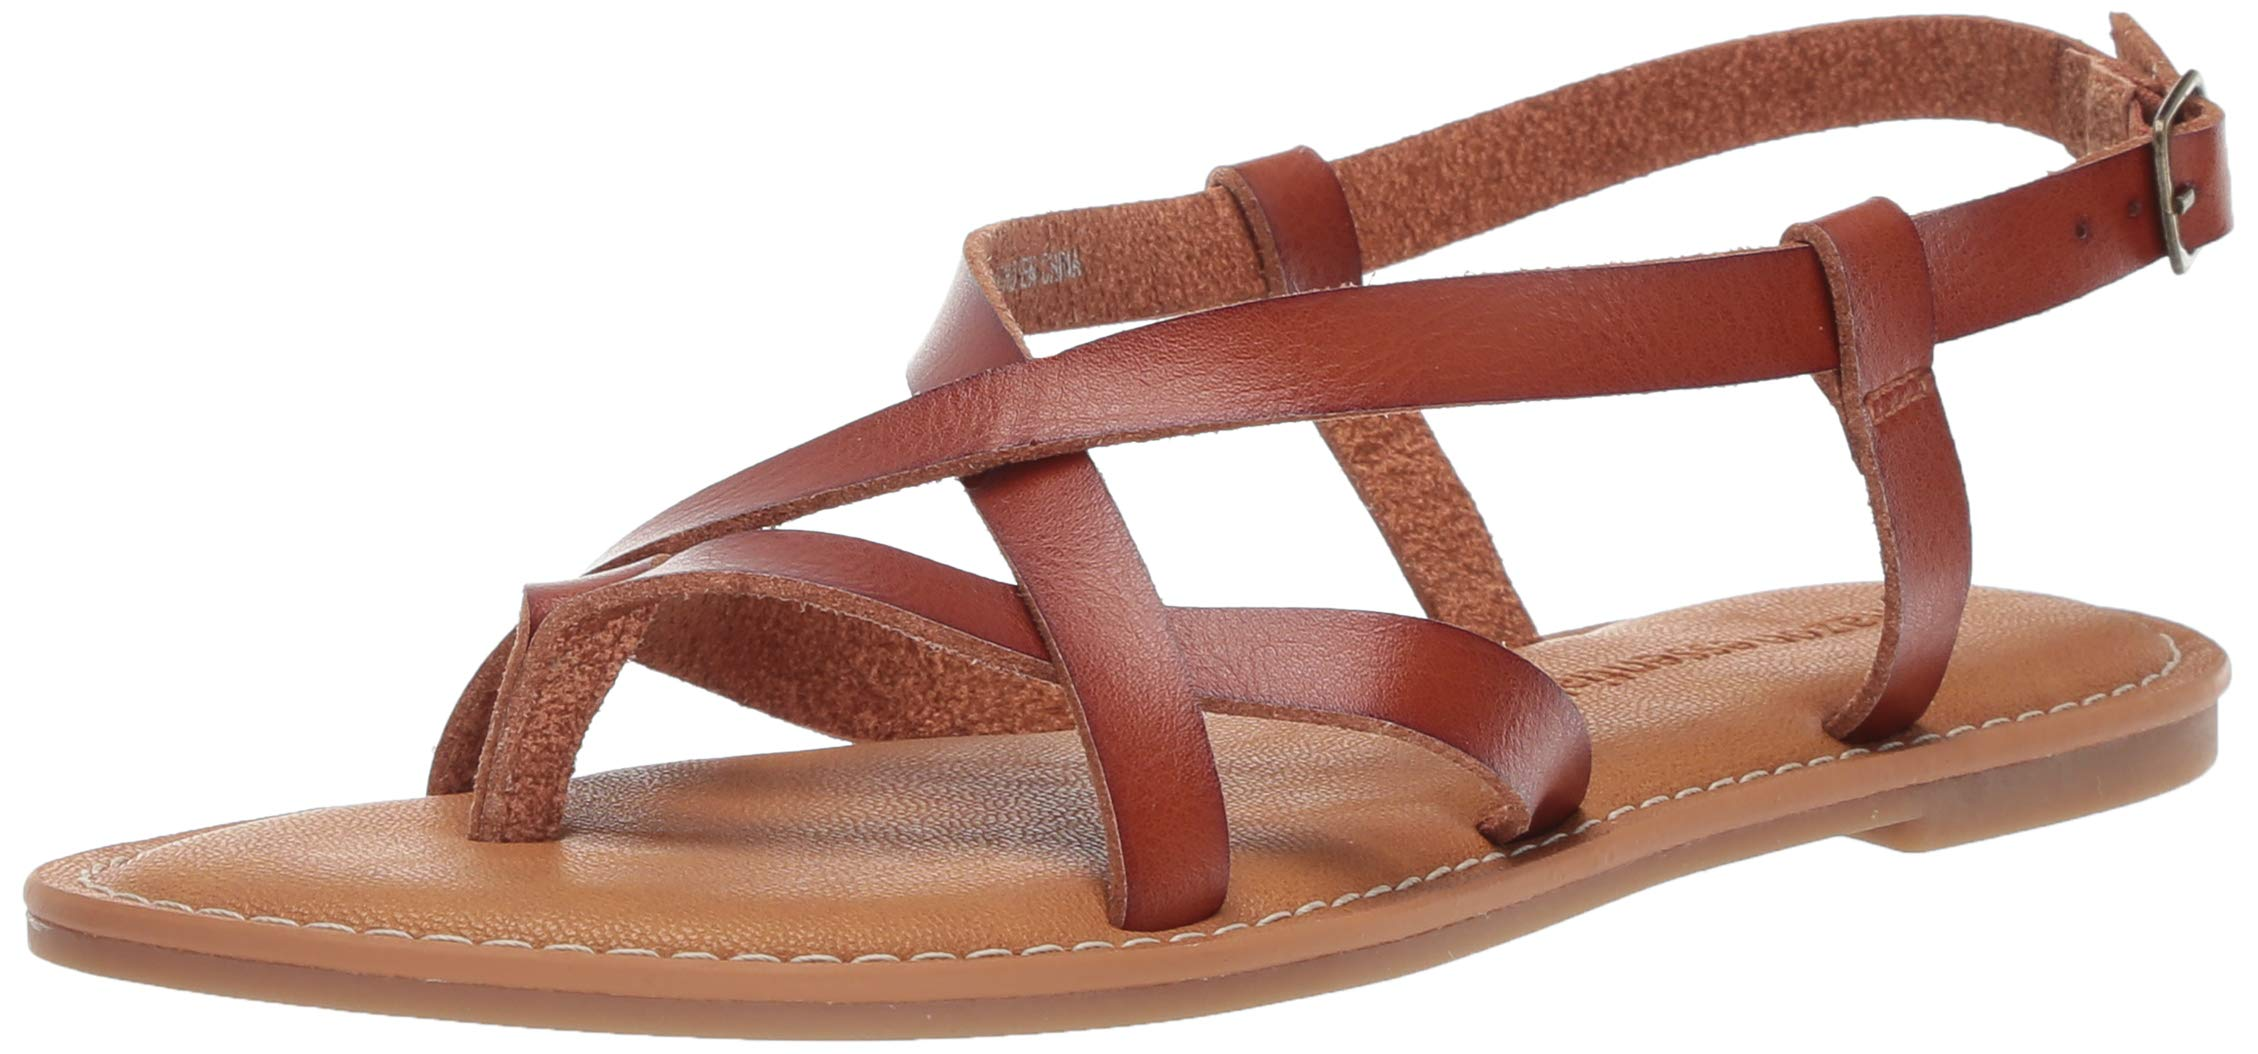 Amazon Essentials Women's Casual Strappy Sandal